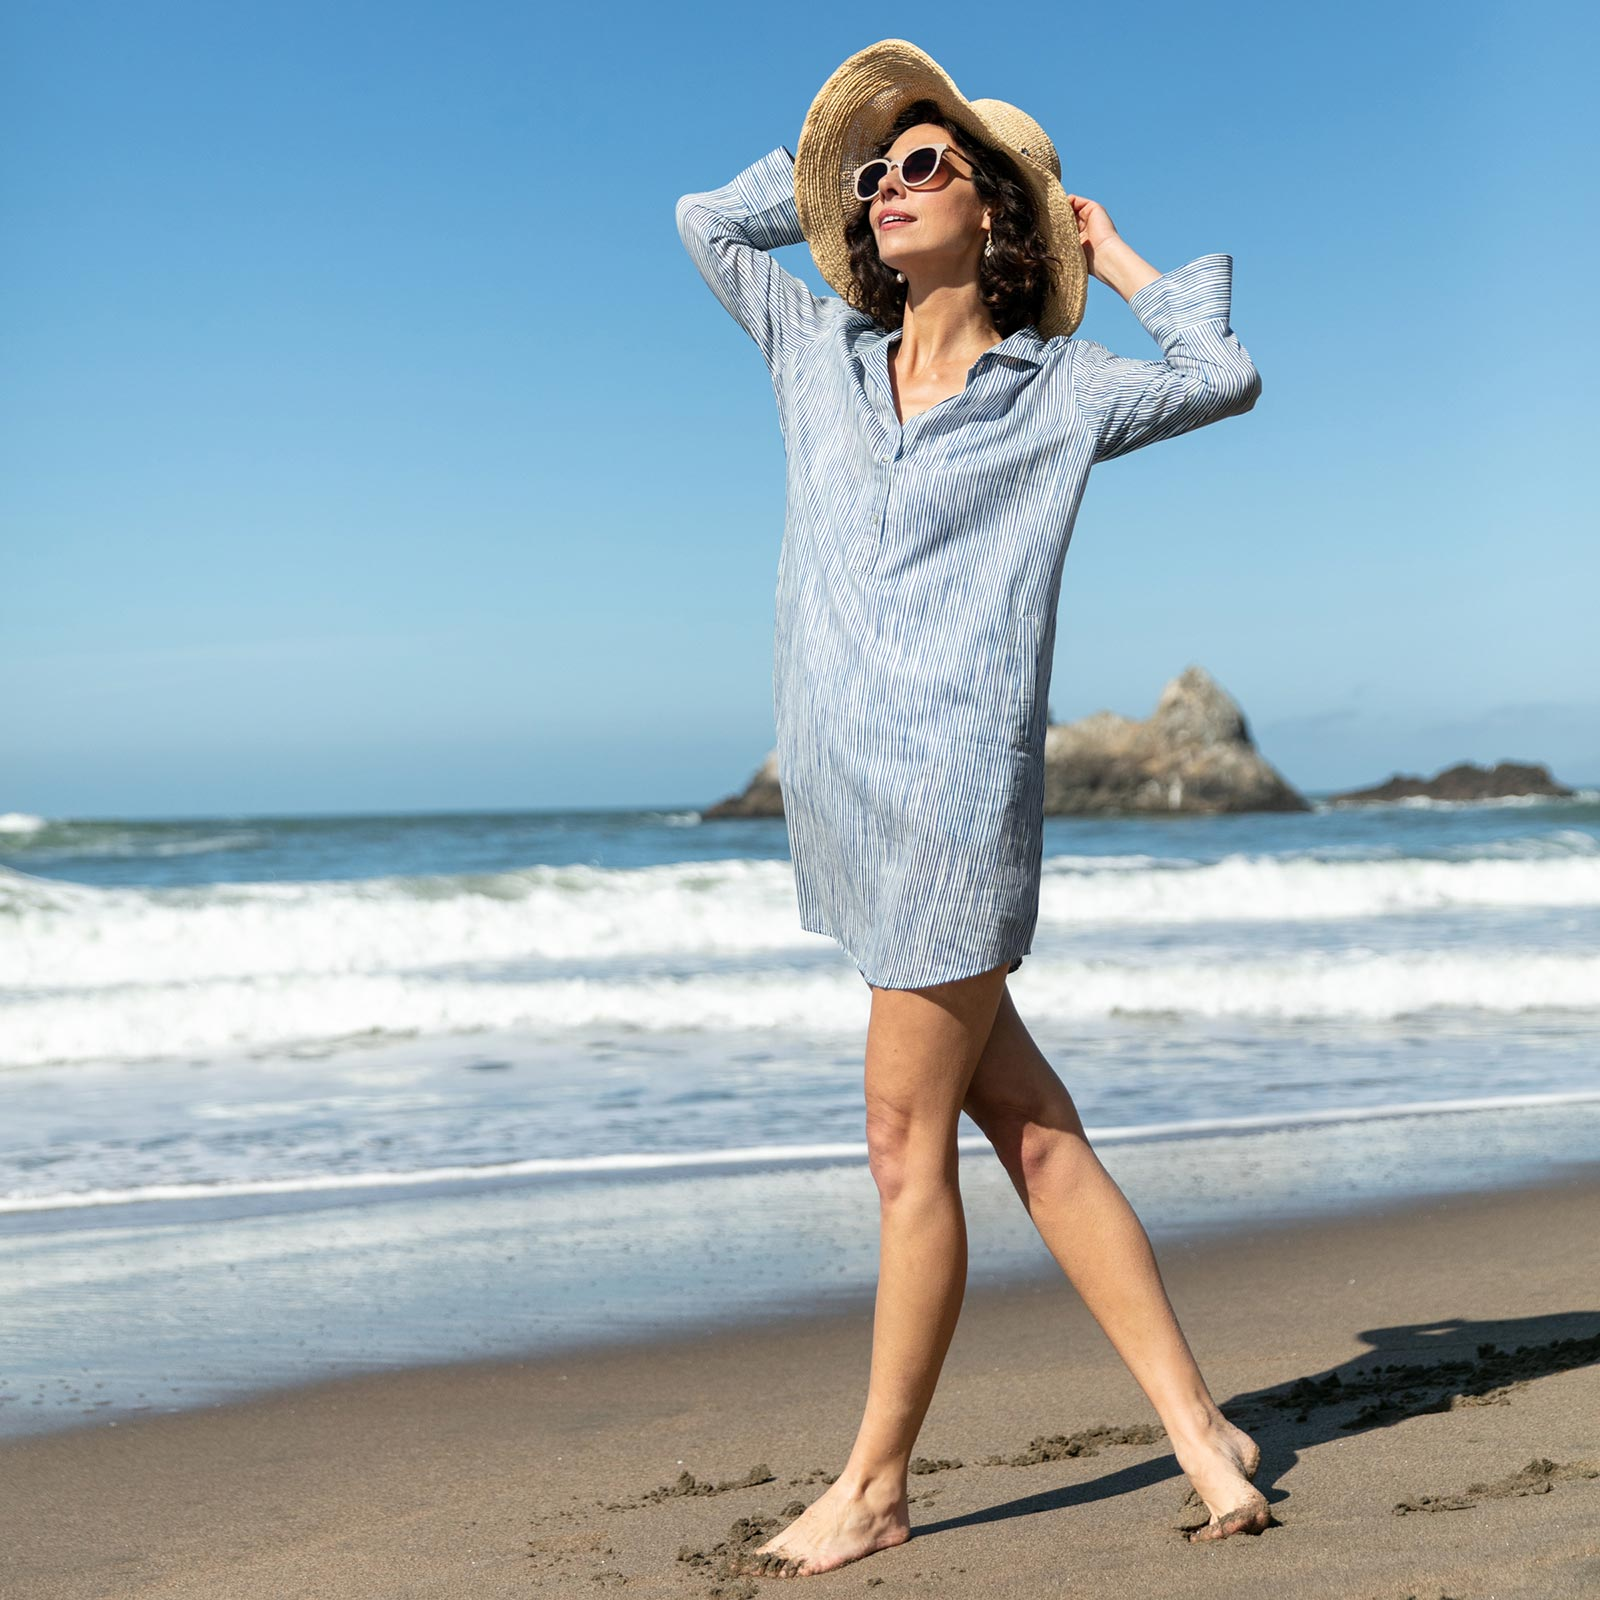 Suri Navy blu Cotton Beach Shirt